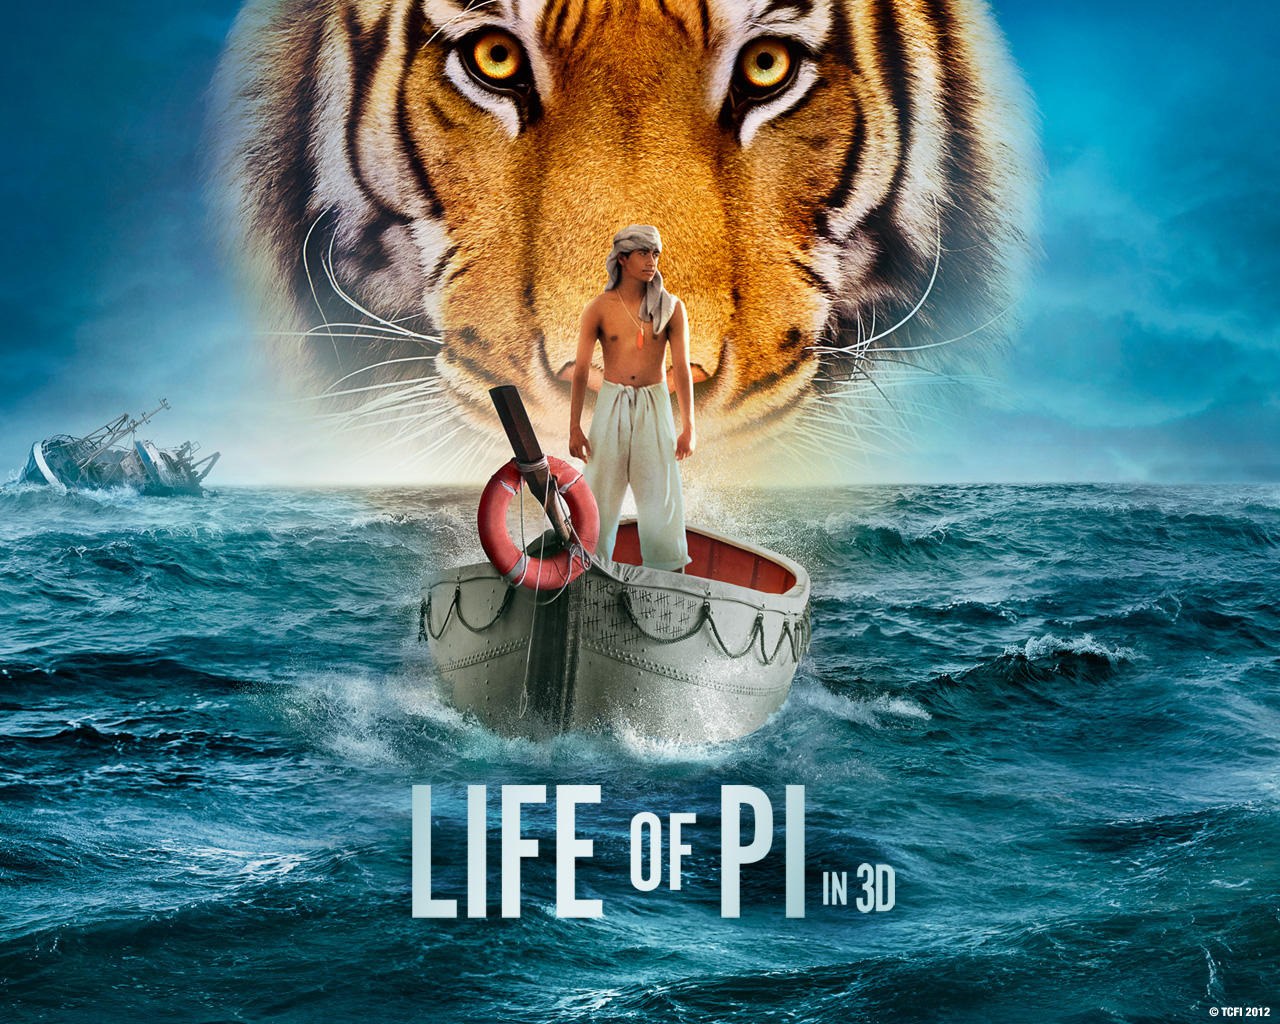 Life of pi life of pi movie overview for Life of pi animals